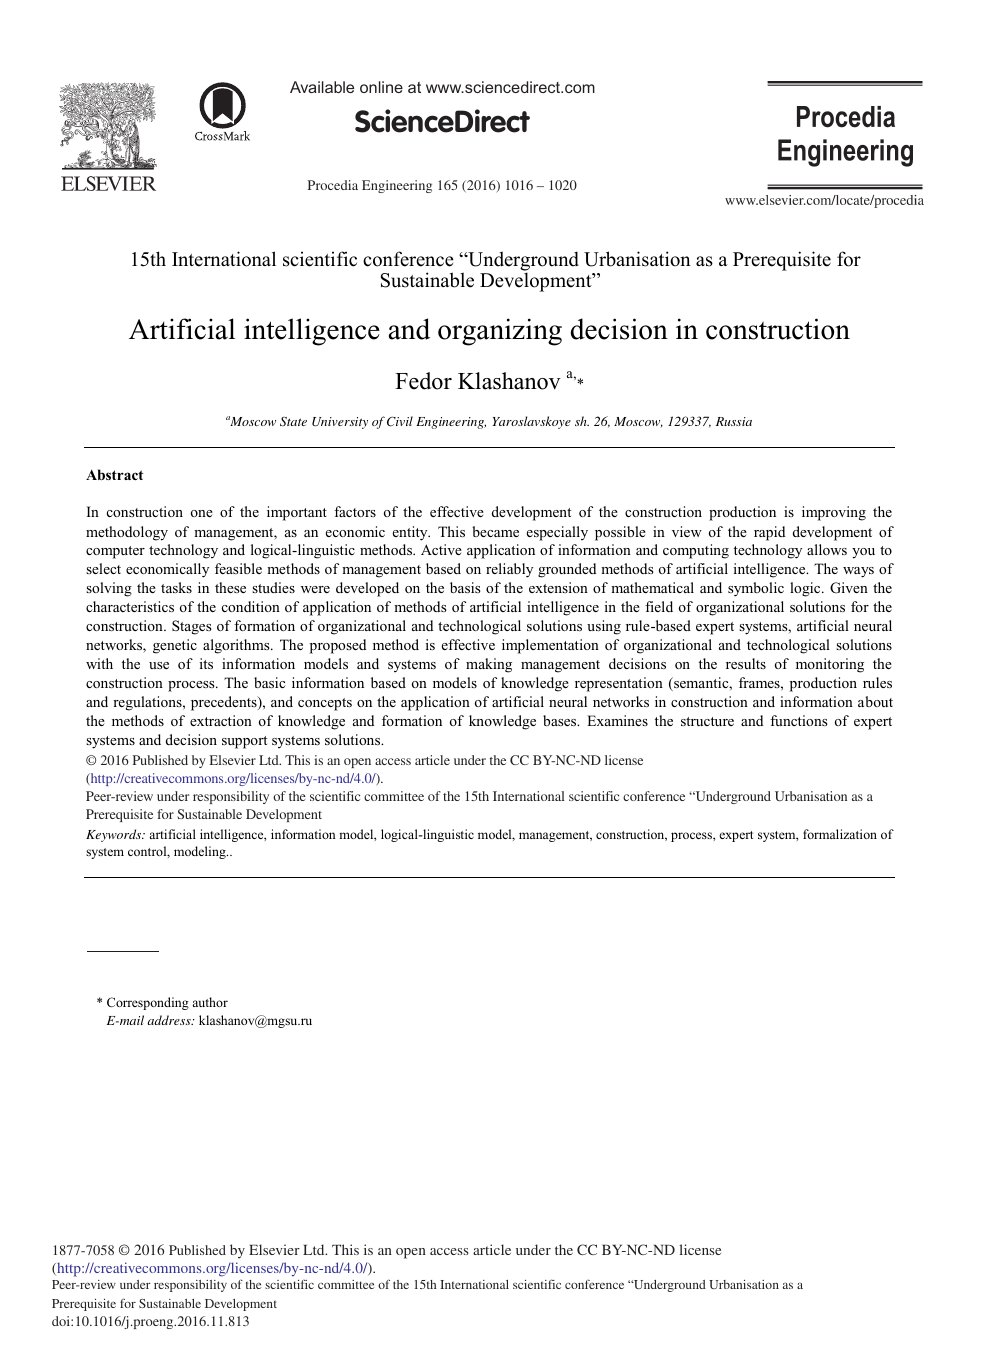 005 Artificial Intelligence Research Paper Phenomenal Ieee Ideas Topics Full